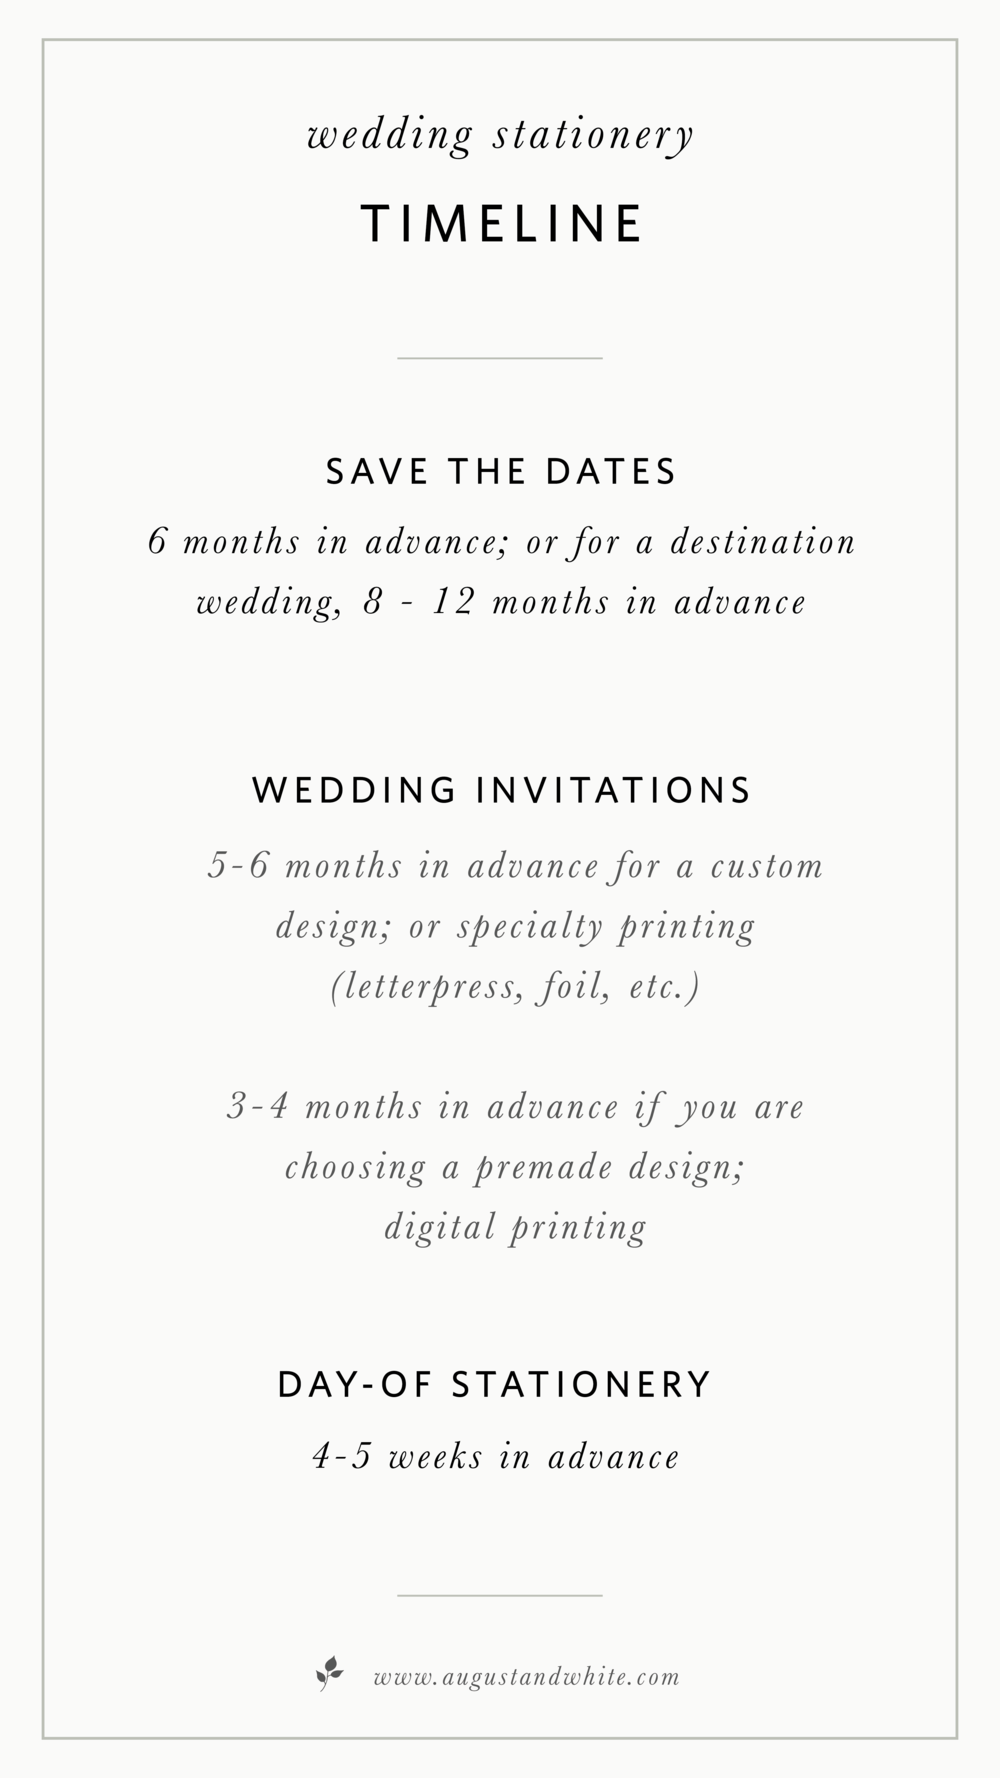 When To Order Wedding Stationery | August + White